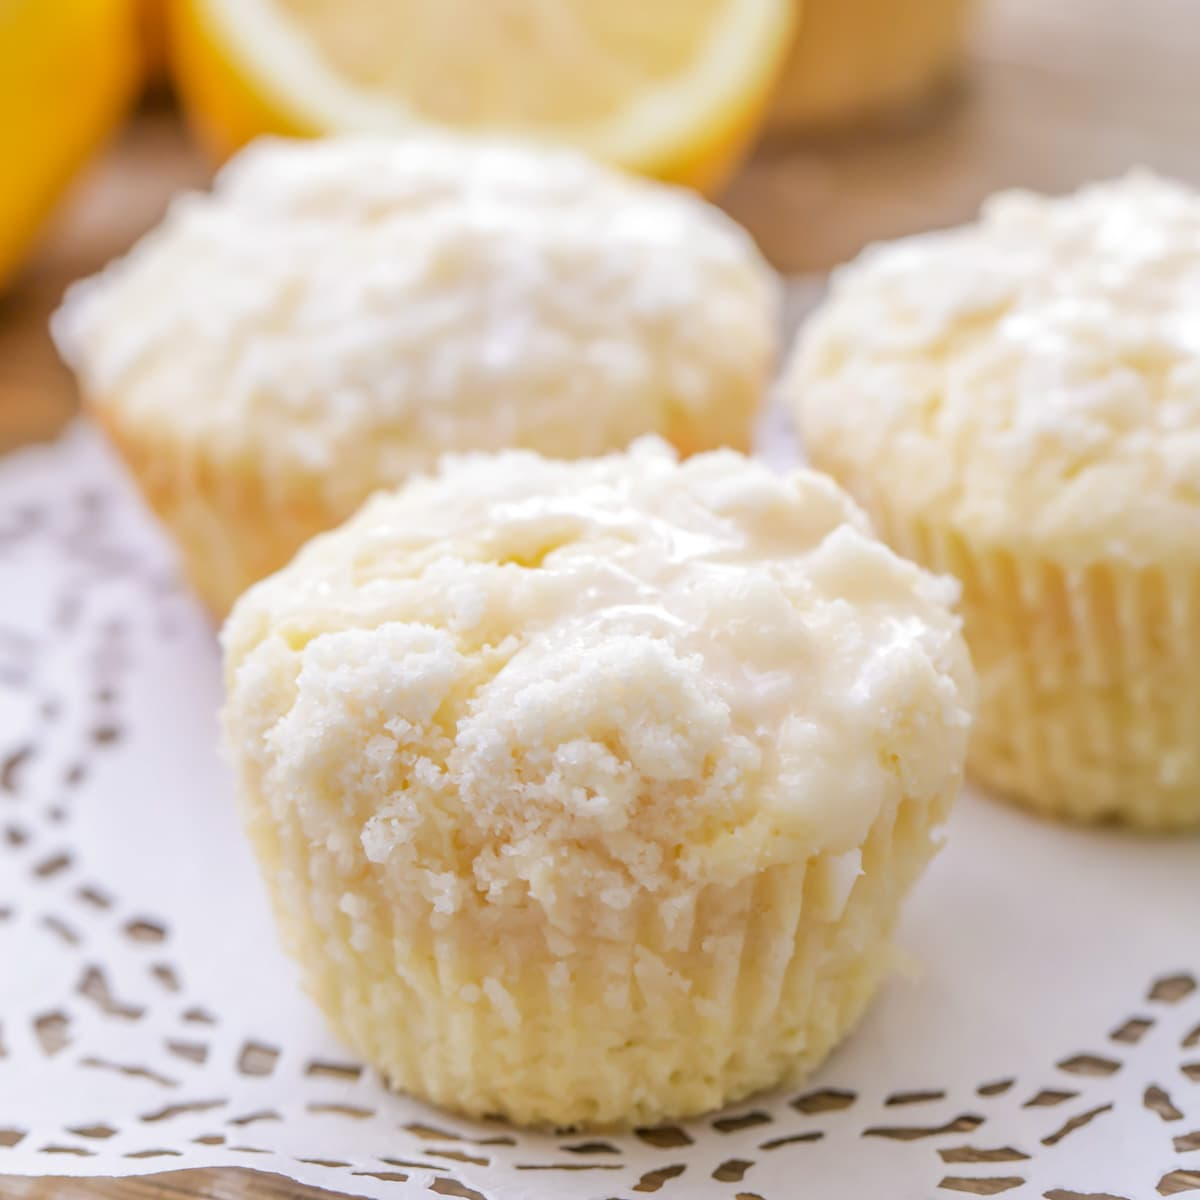 Lemon muffins with crumb topping and a lemon glaze